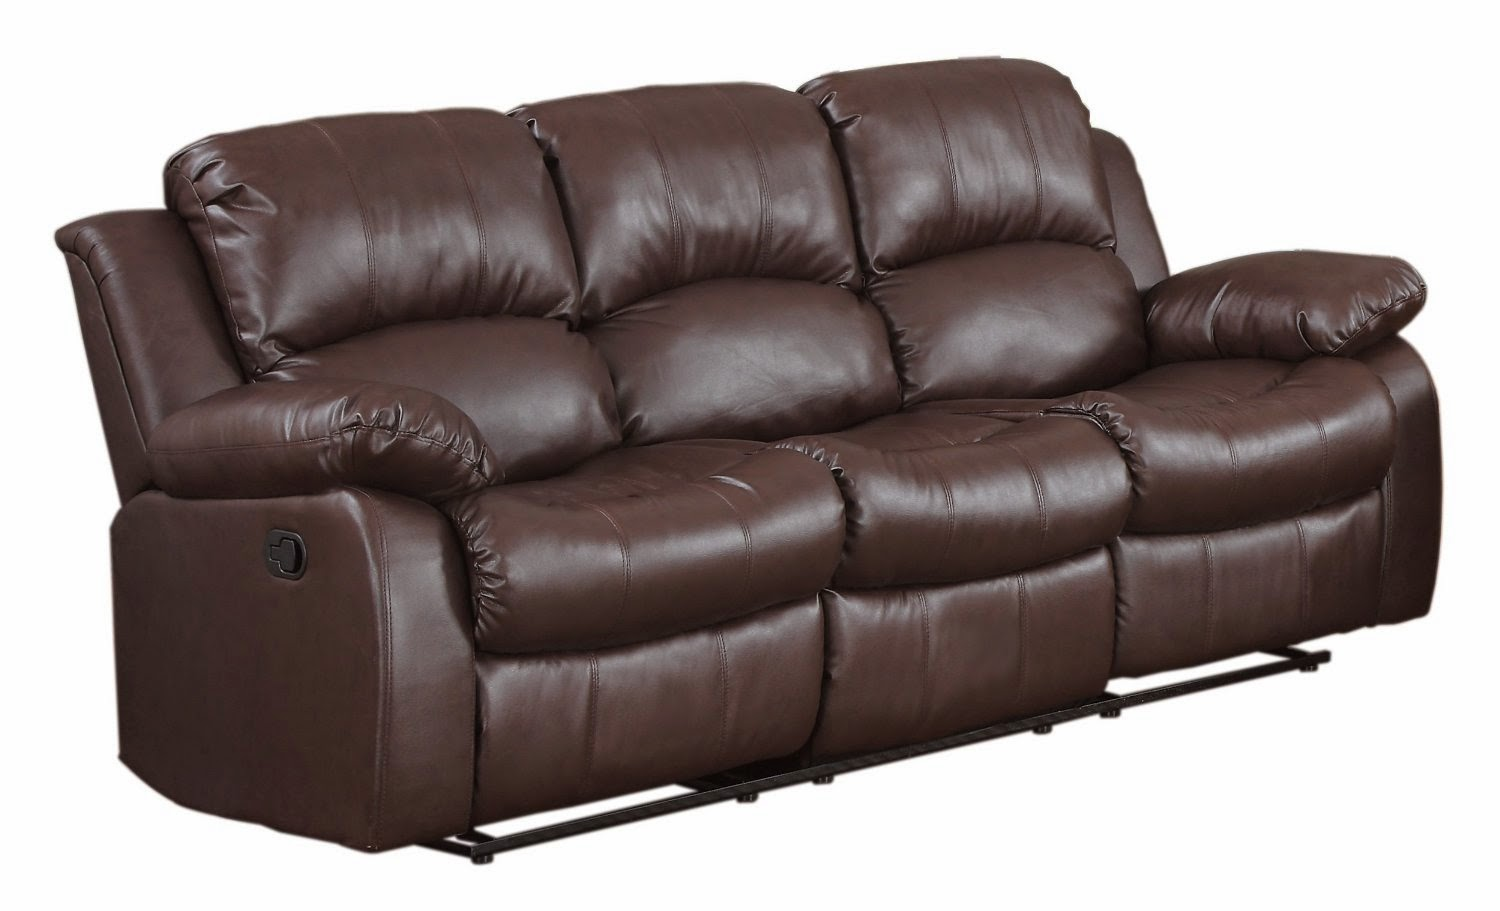 leather sofa complaints macy s milano brown sectional the best reclining reviews loukas